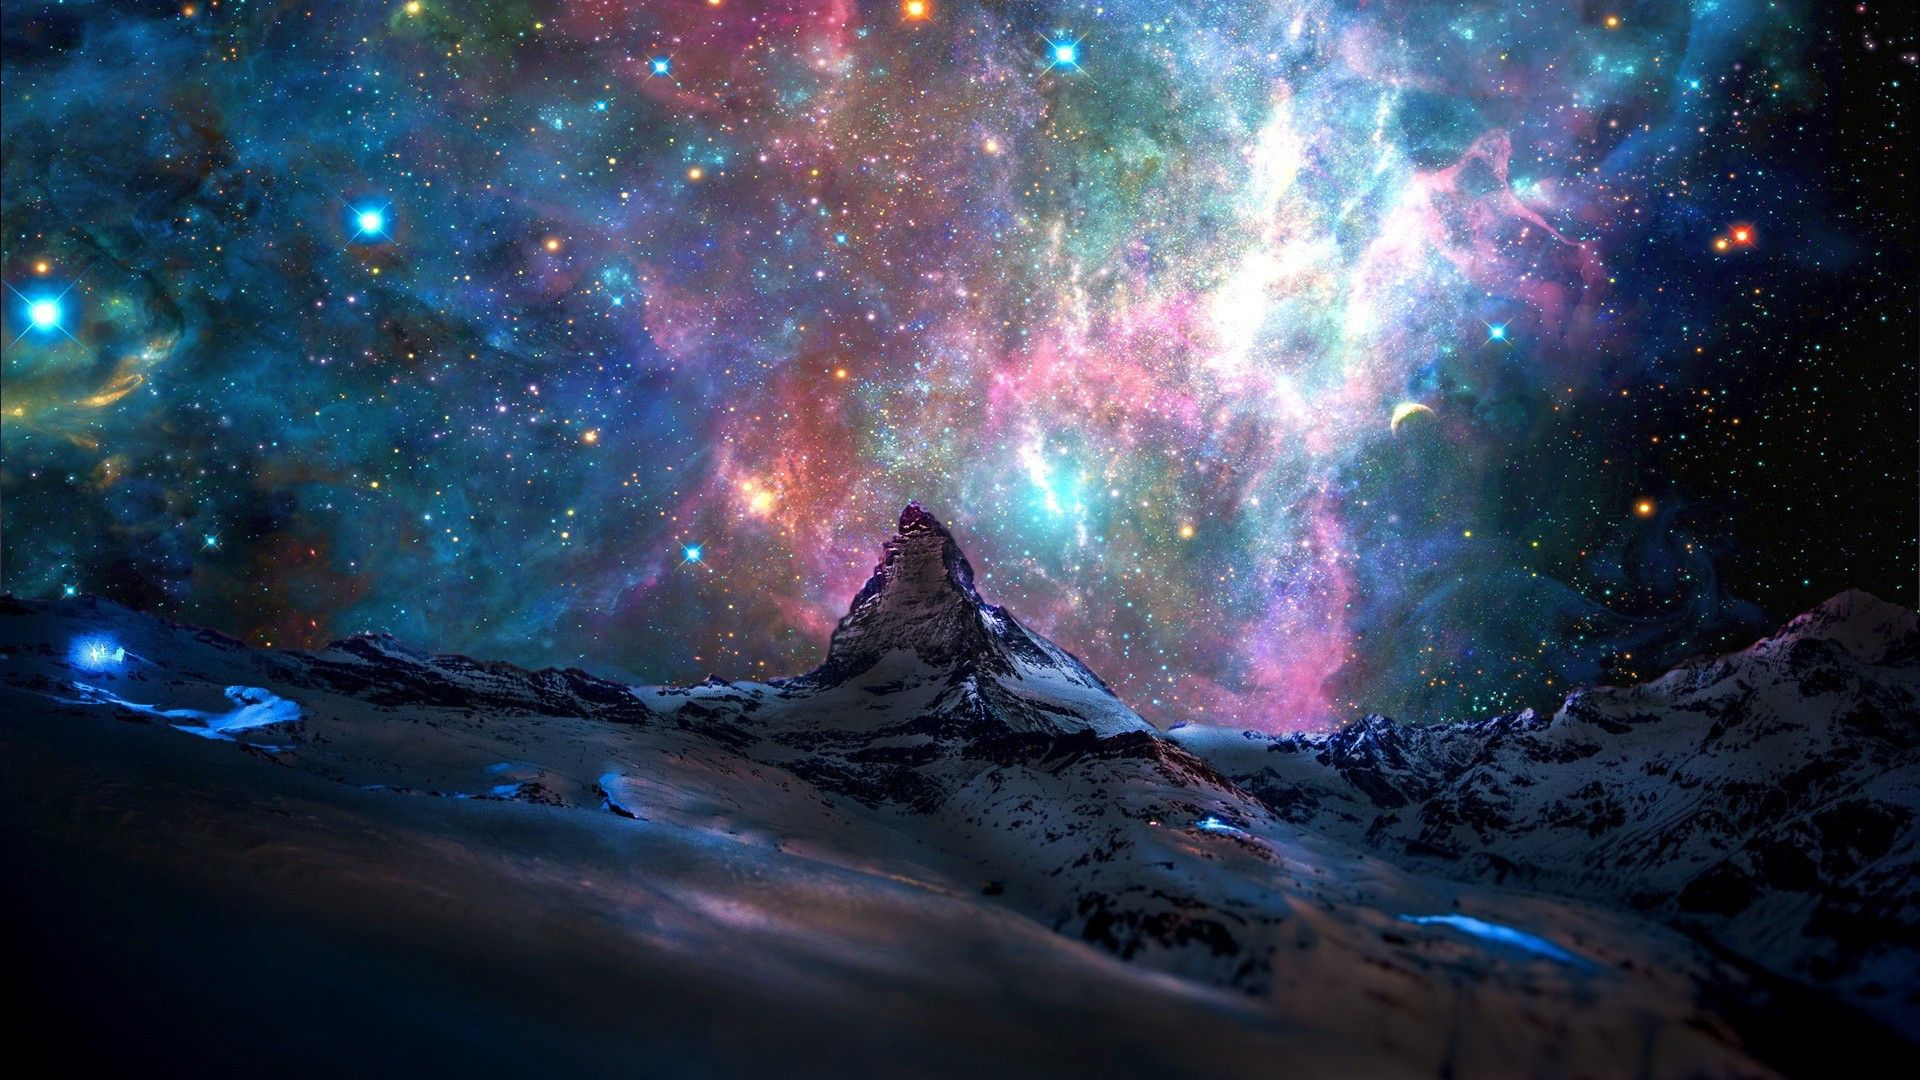 Wallpaper Collection 37 Best Free Hd Space Desktop Backgrounds Background To Download In 2020 Nebula Wallpaper Galaxy Wallpaper Laptop Wallpaper Desktop Wallpapers